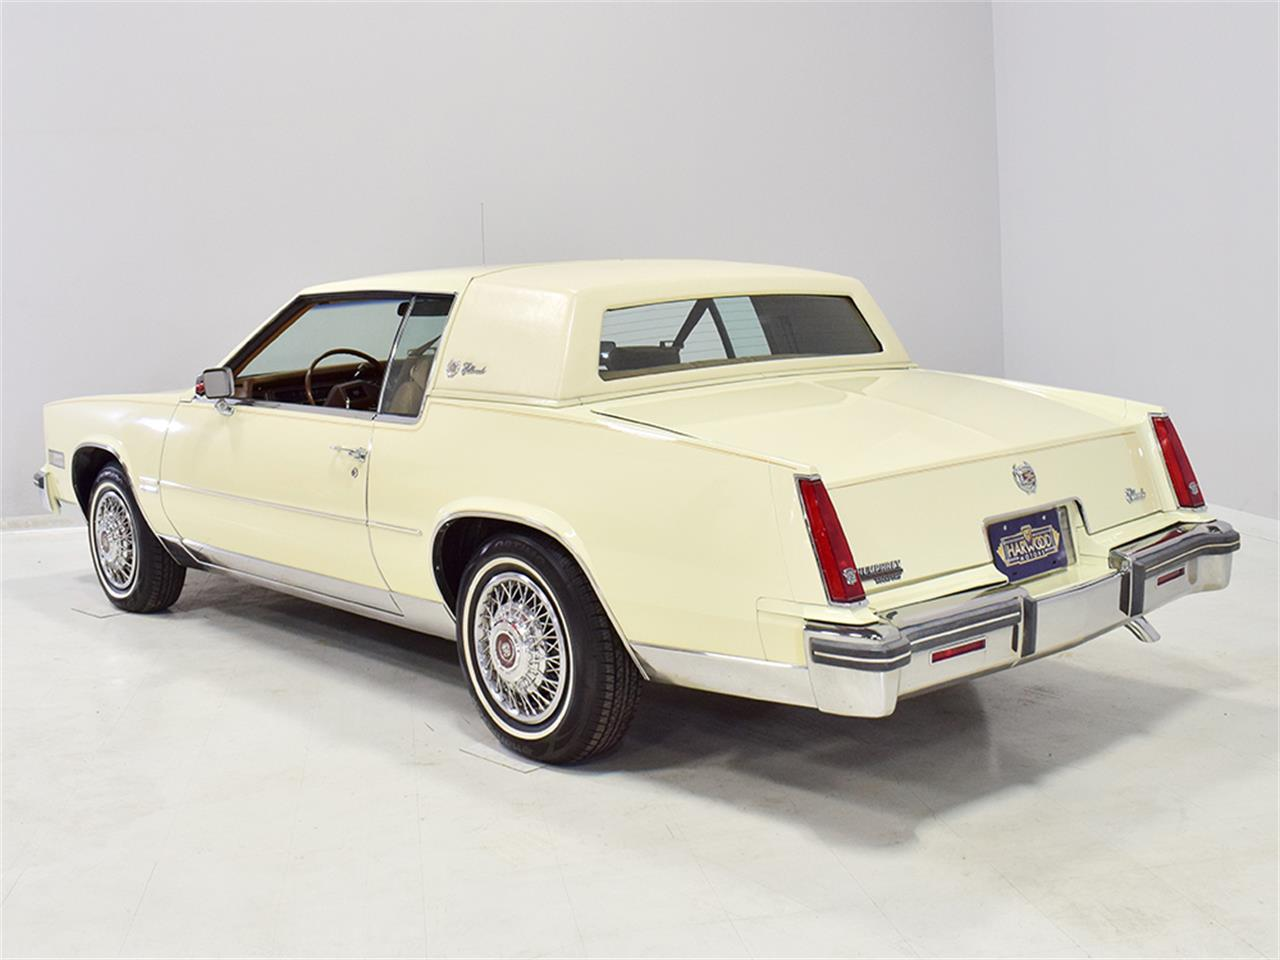 1981 cadillac eldorado for sale in macedonia oh classiccarsbay com 1981 cadillac eldorado for sale in